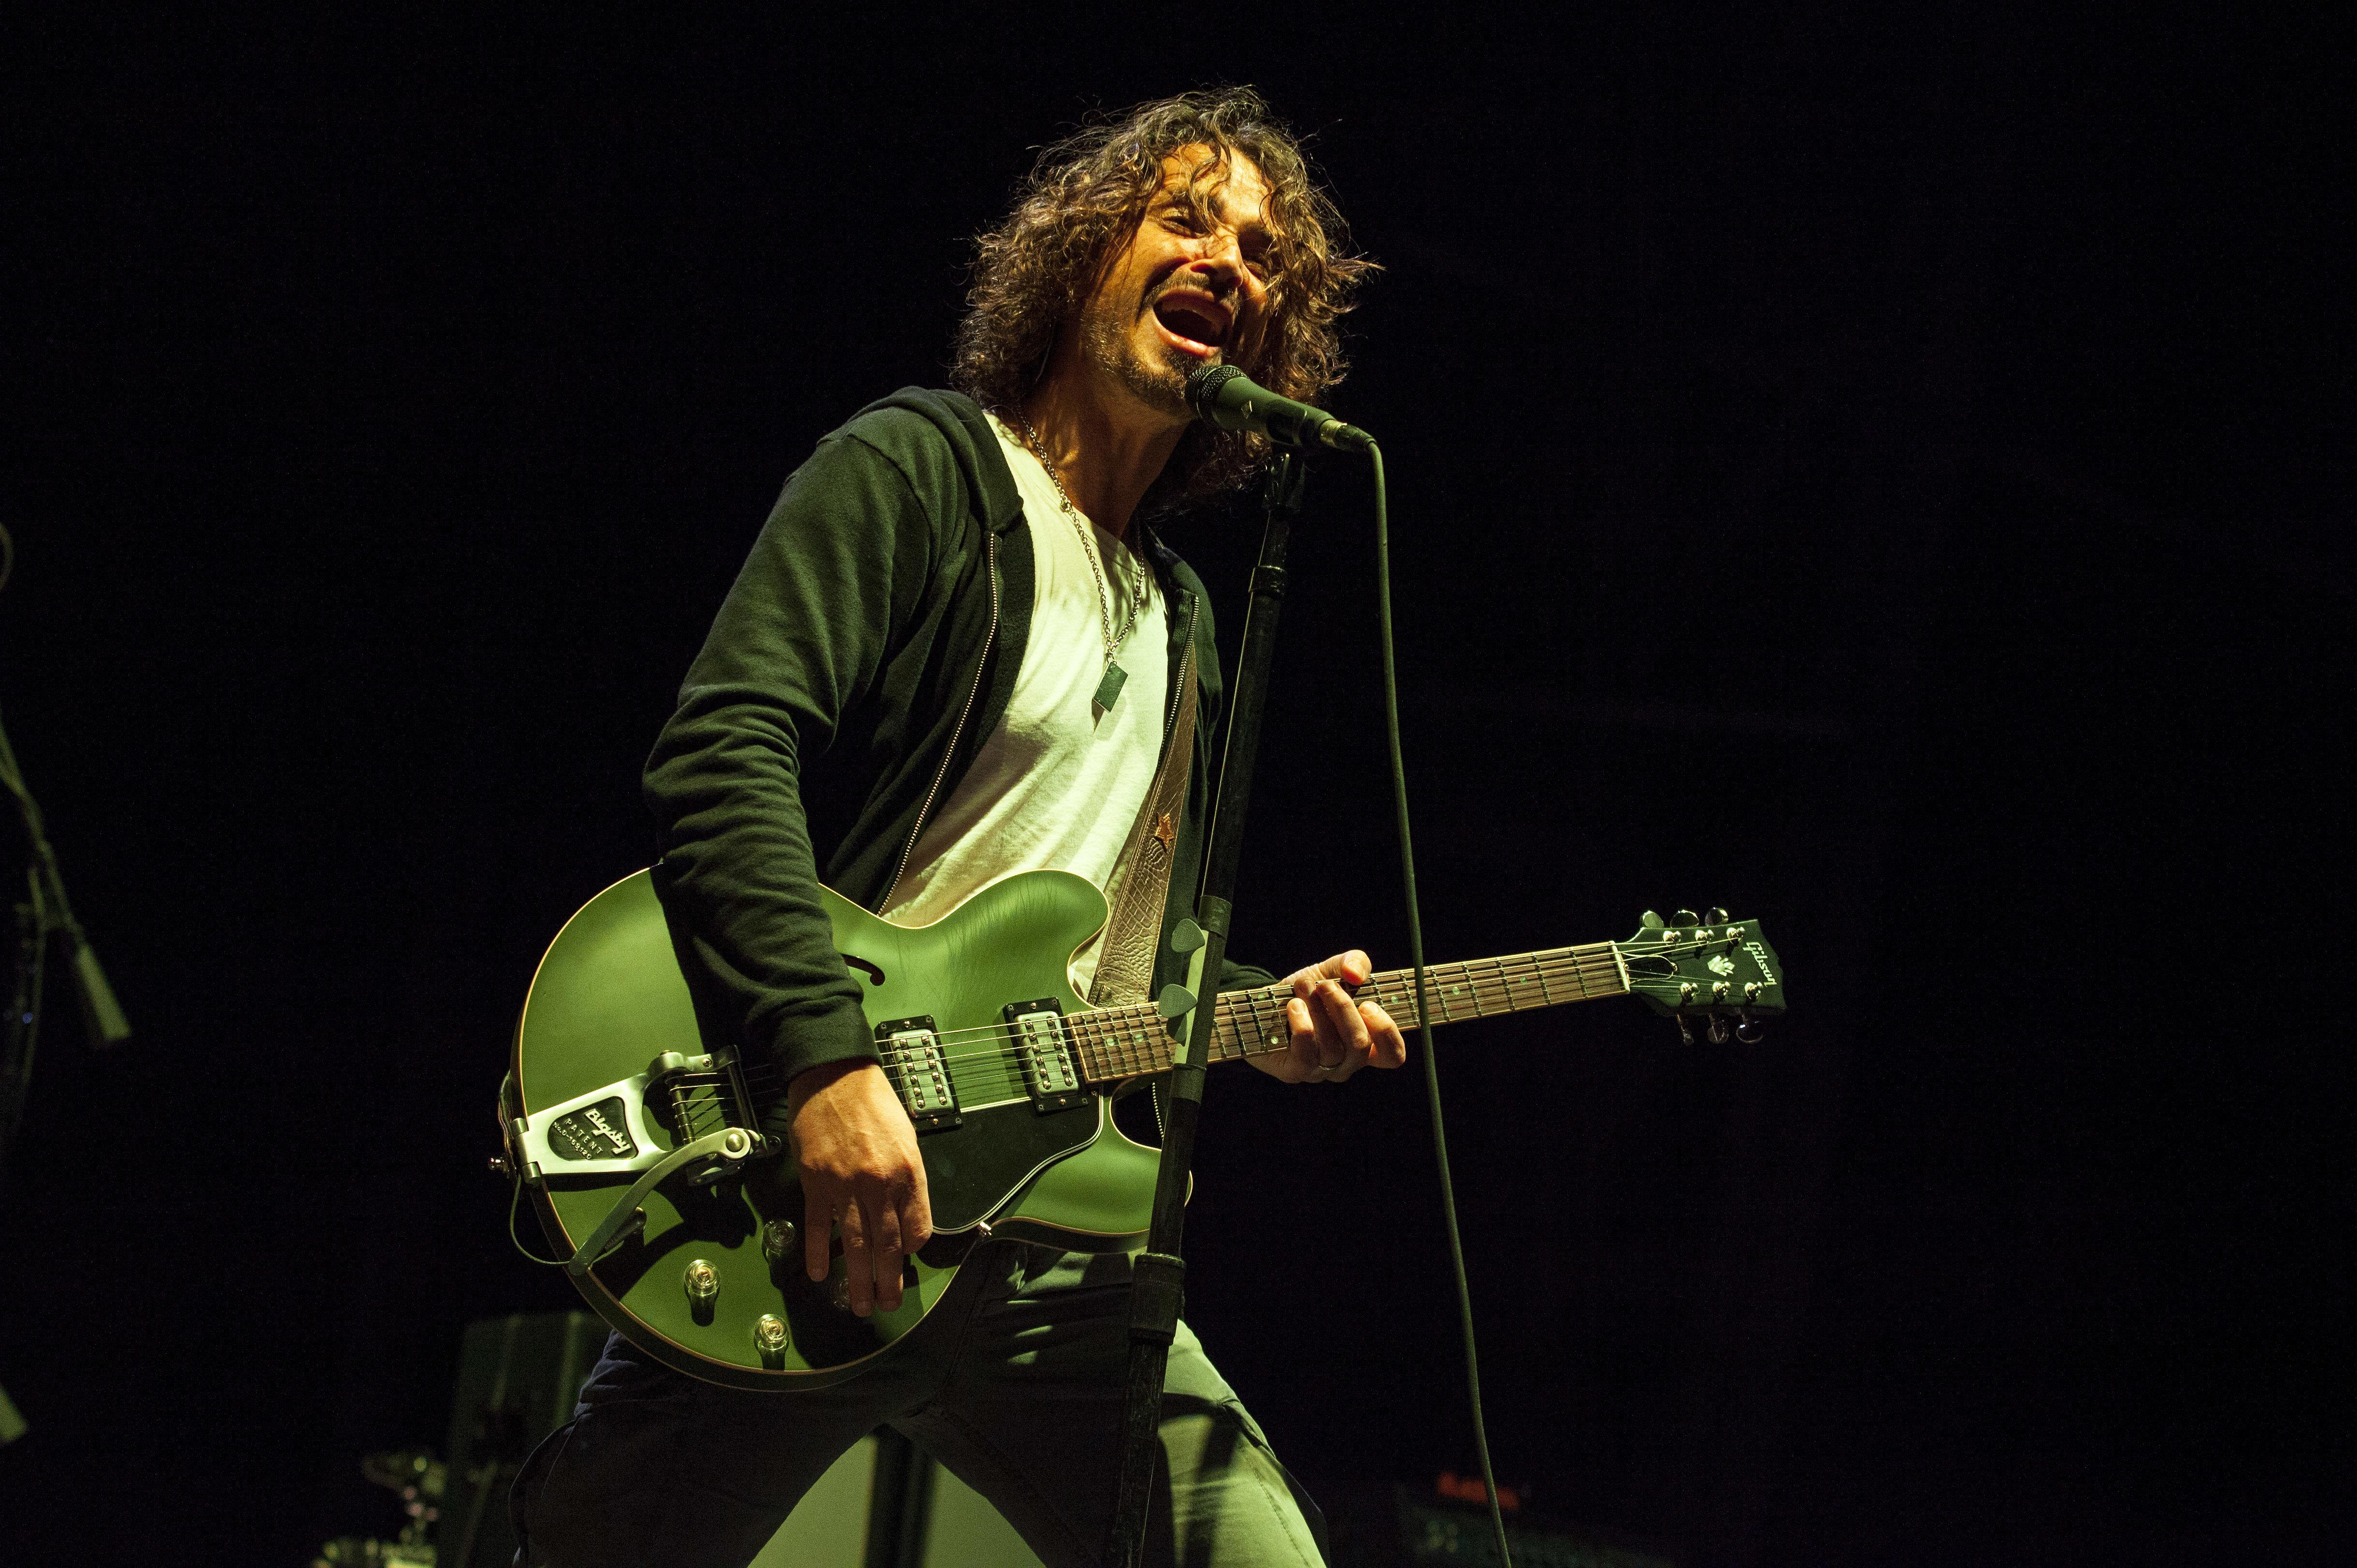 Unreleased Chris Cornell songs will be released in November